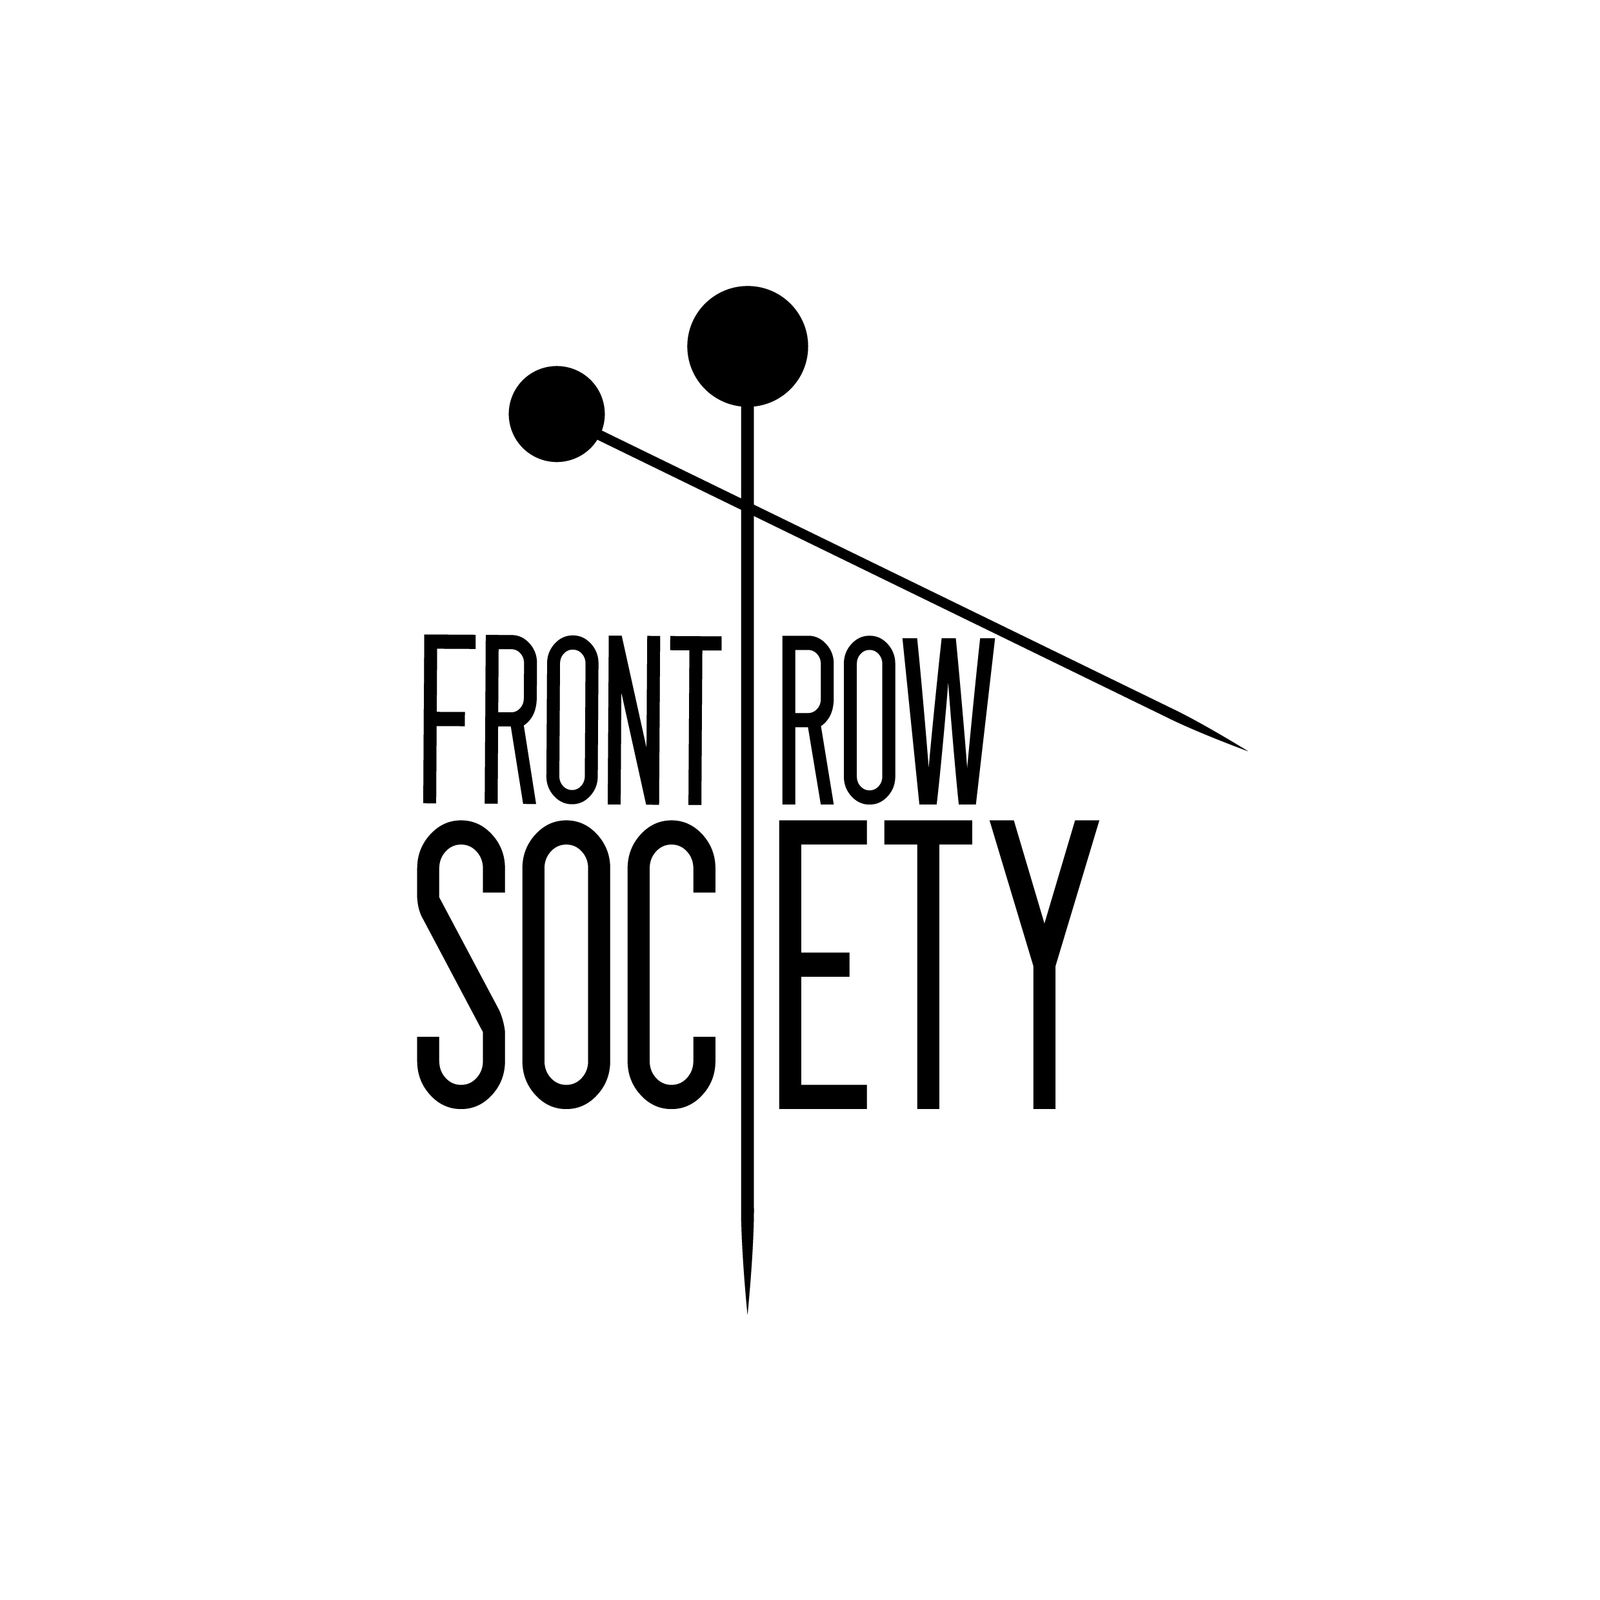 FRONT ROW SOCIETY (Bild 1)